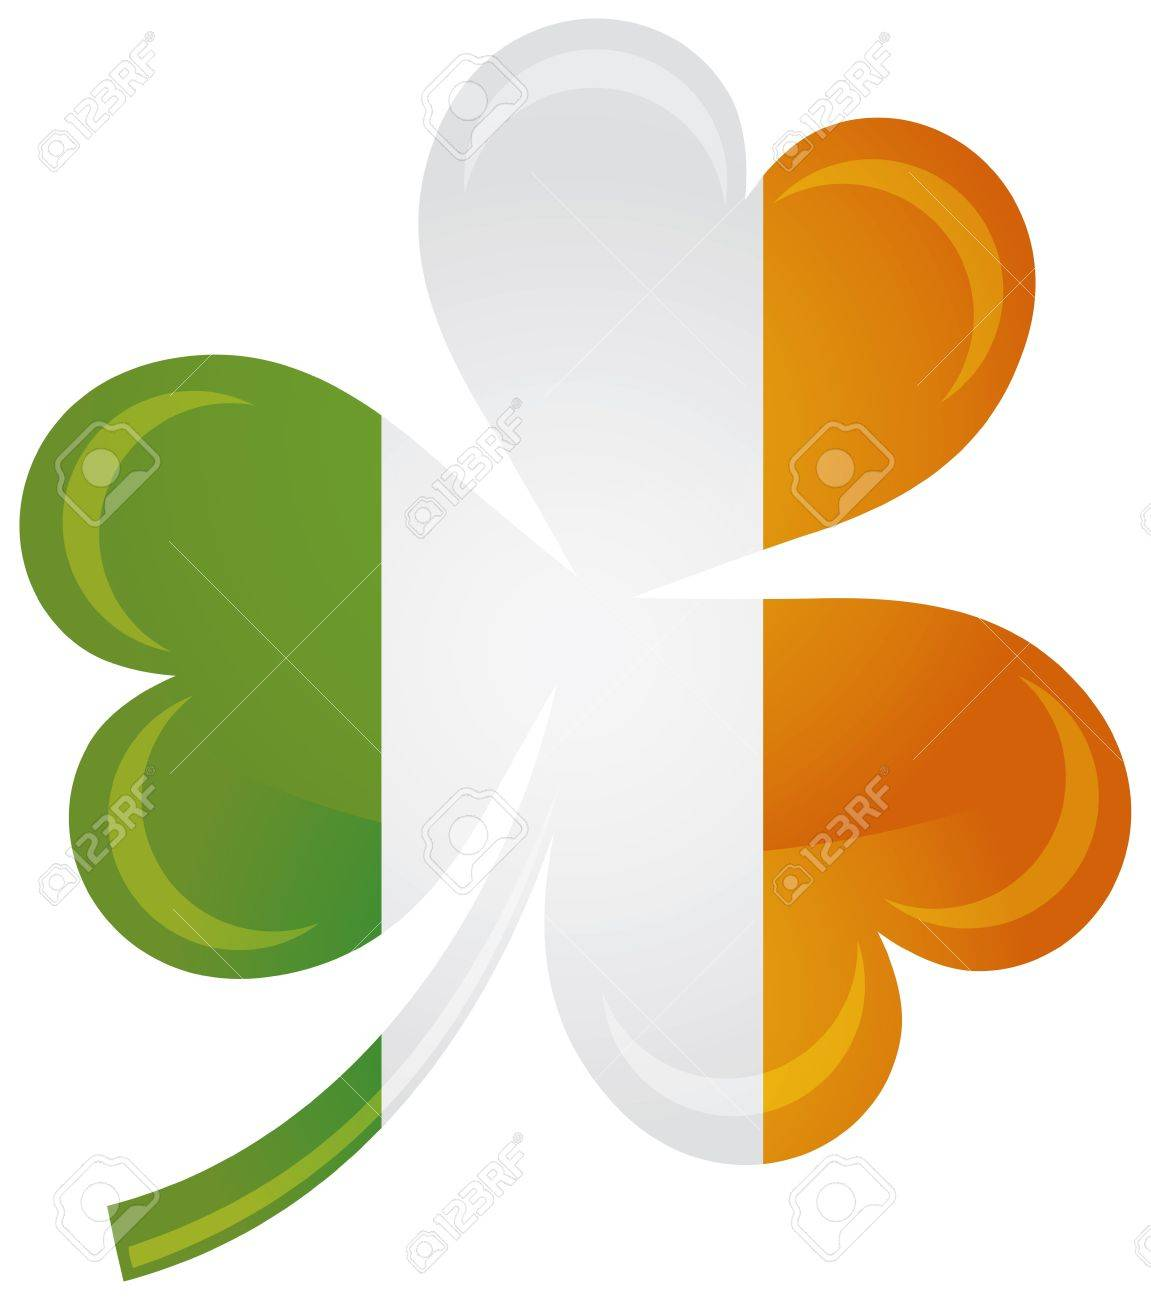 Ireland Flag with Shamrock Silhouette Isolated on White Background Illustration Stock Vector - 16917080